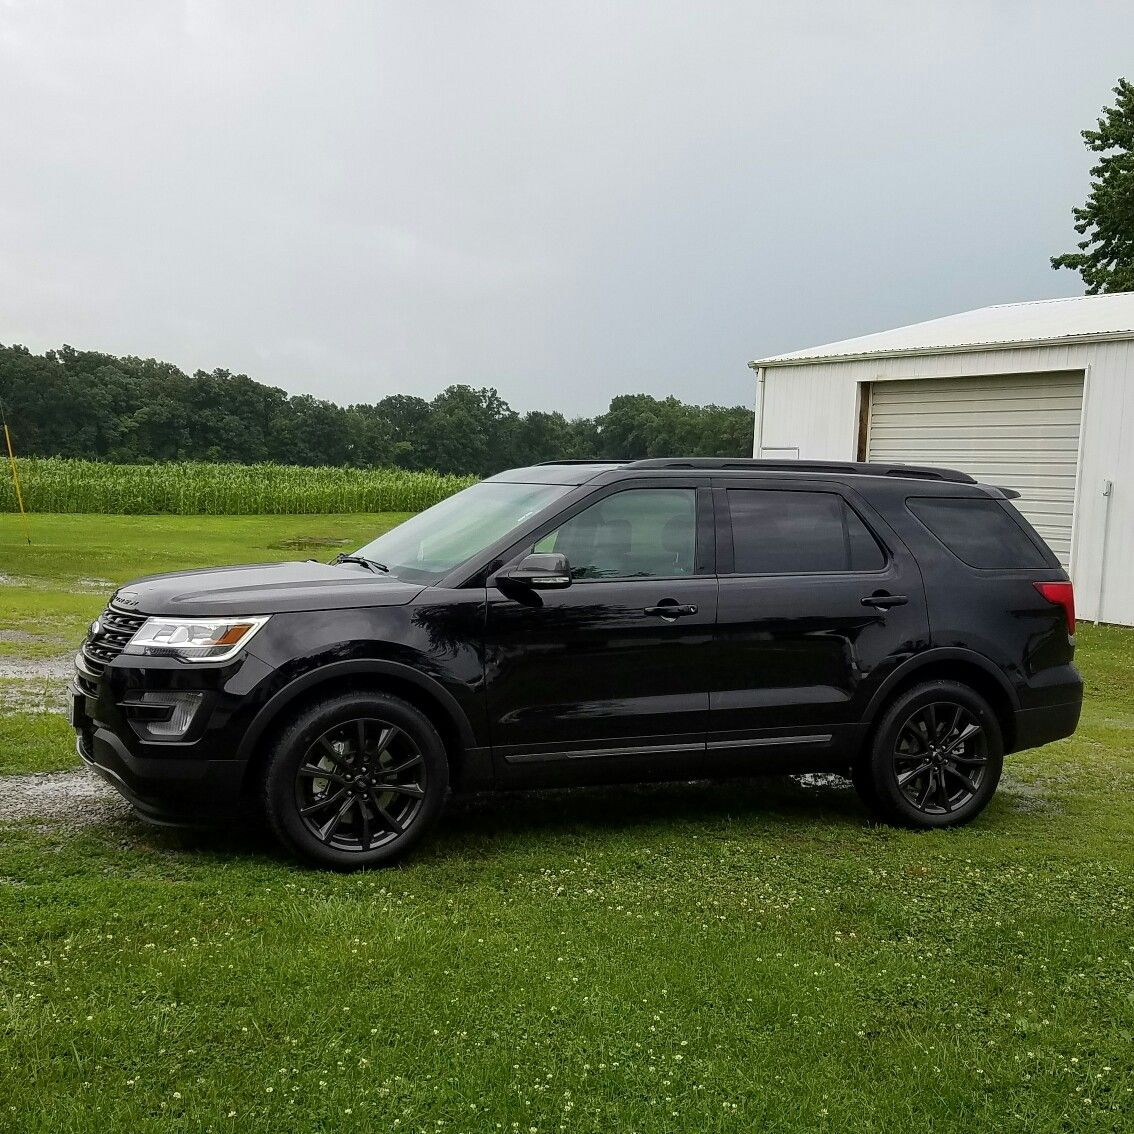 2017 Ford Explorer W/sport Appearance Package...my Ford